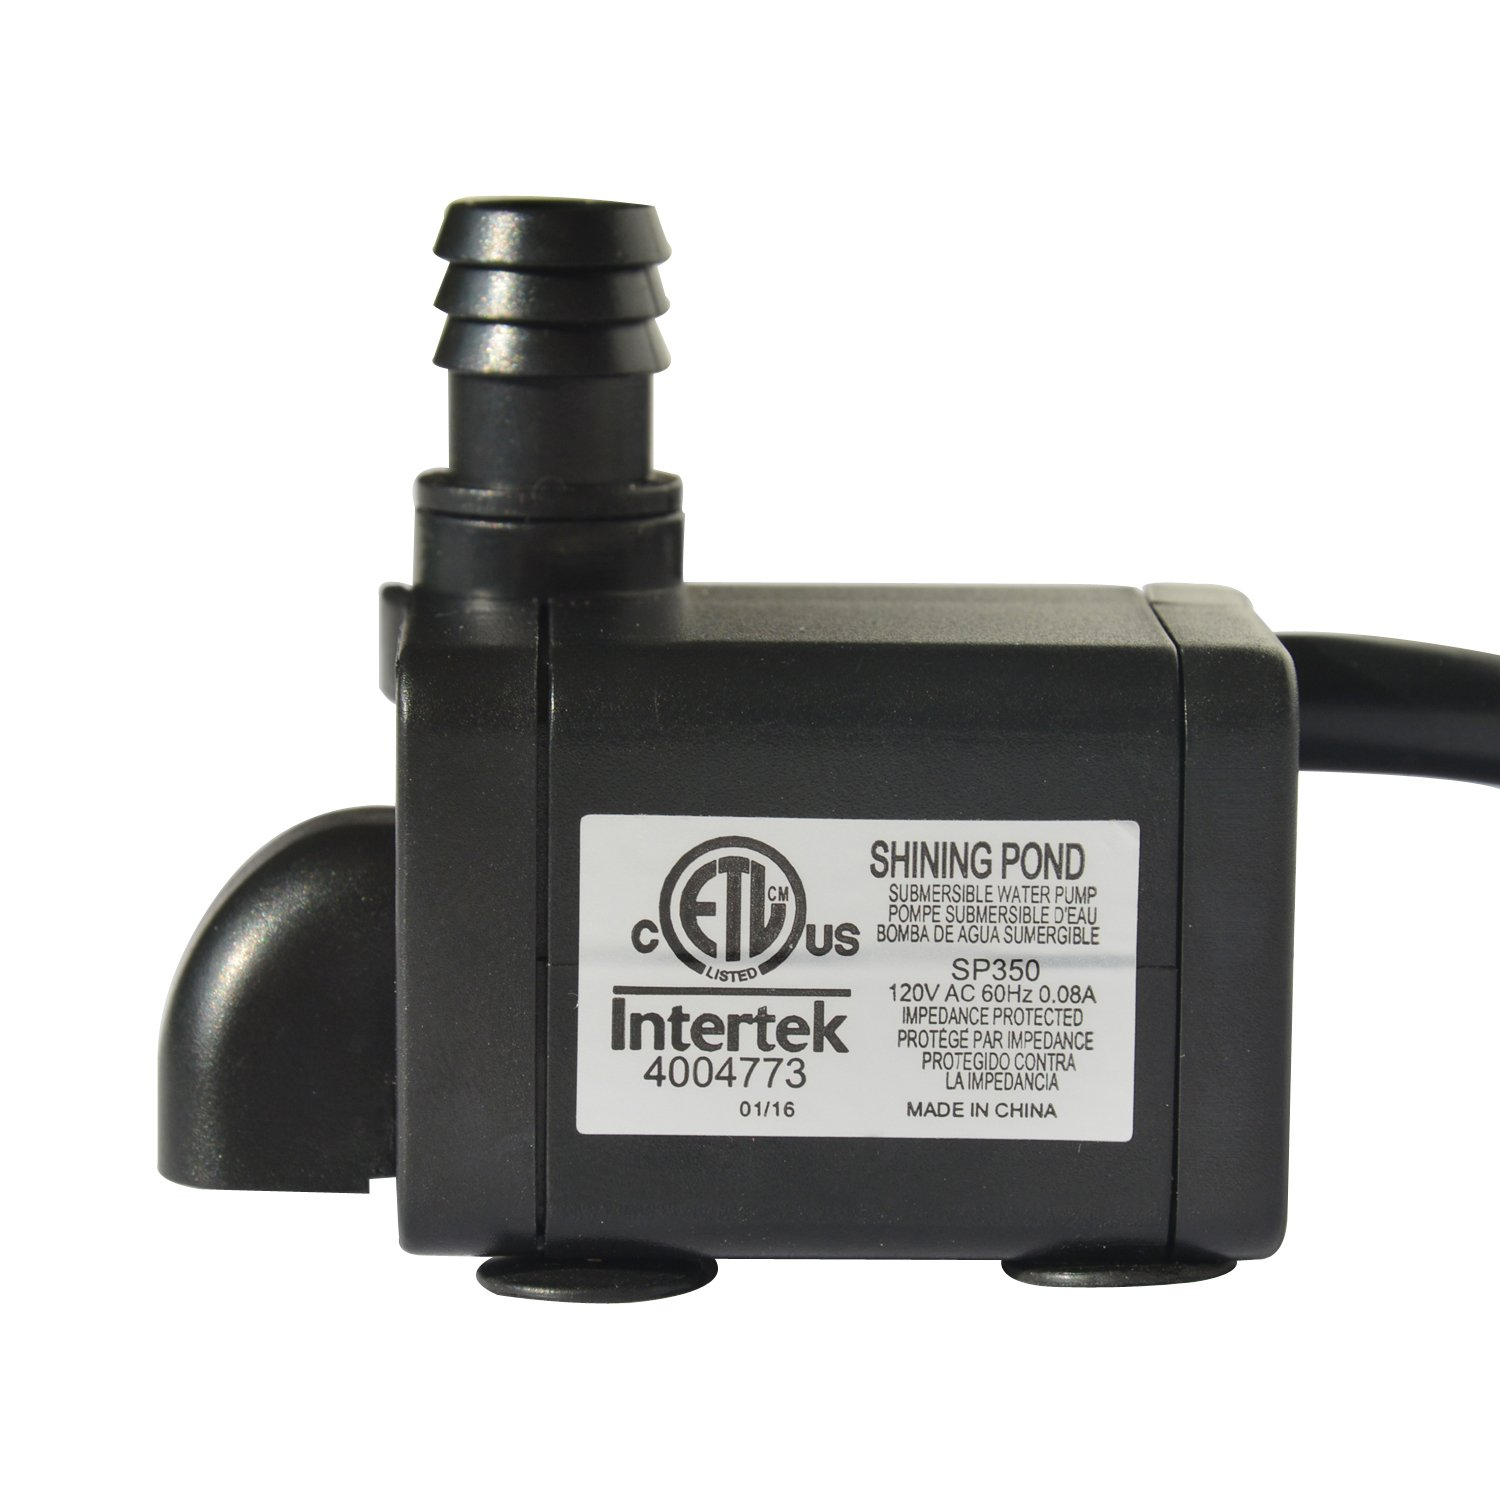 Amazoncom  Shining Pond  GPH Submersible Water Pump With - Amazon pond pumps